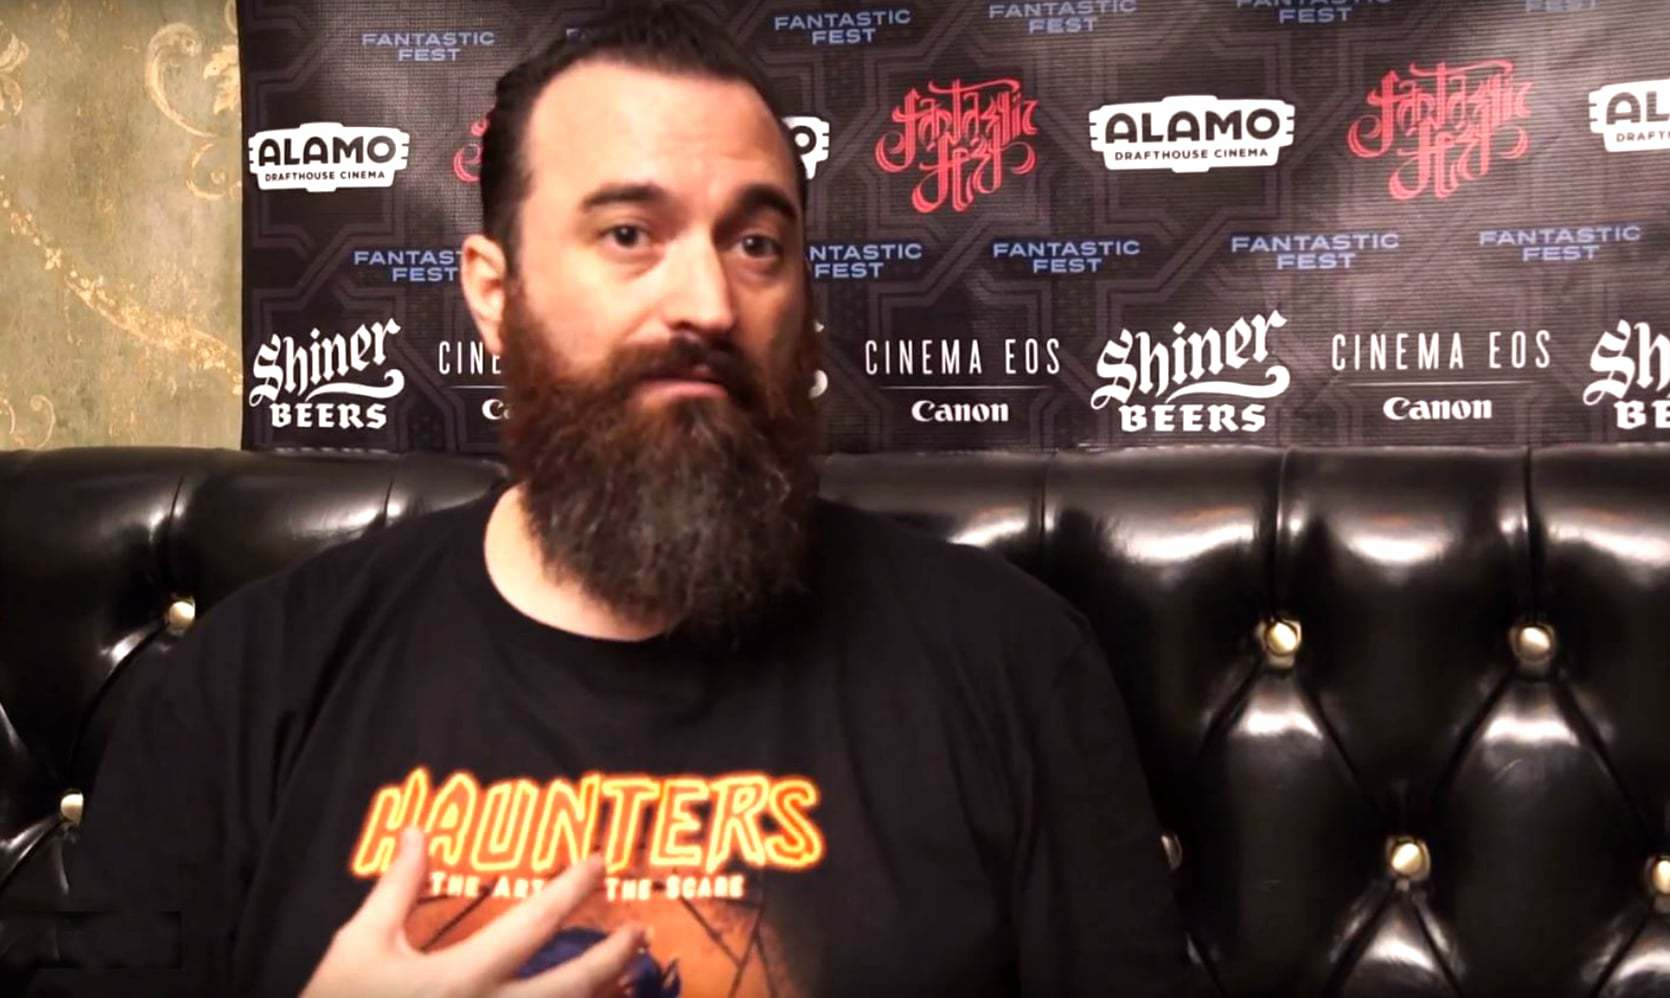 Haunters: The Art of the Scare - Fantastic Fest Interview with Jon Schnitzer - World Premier - Haunt Movie McKamey Manor Blackout Delusion